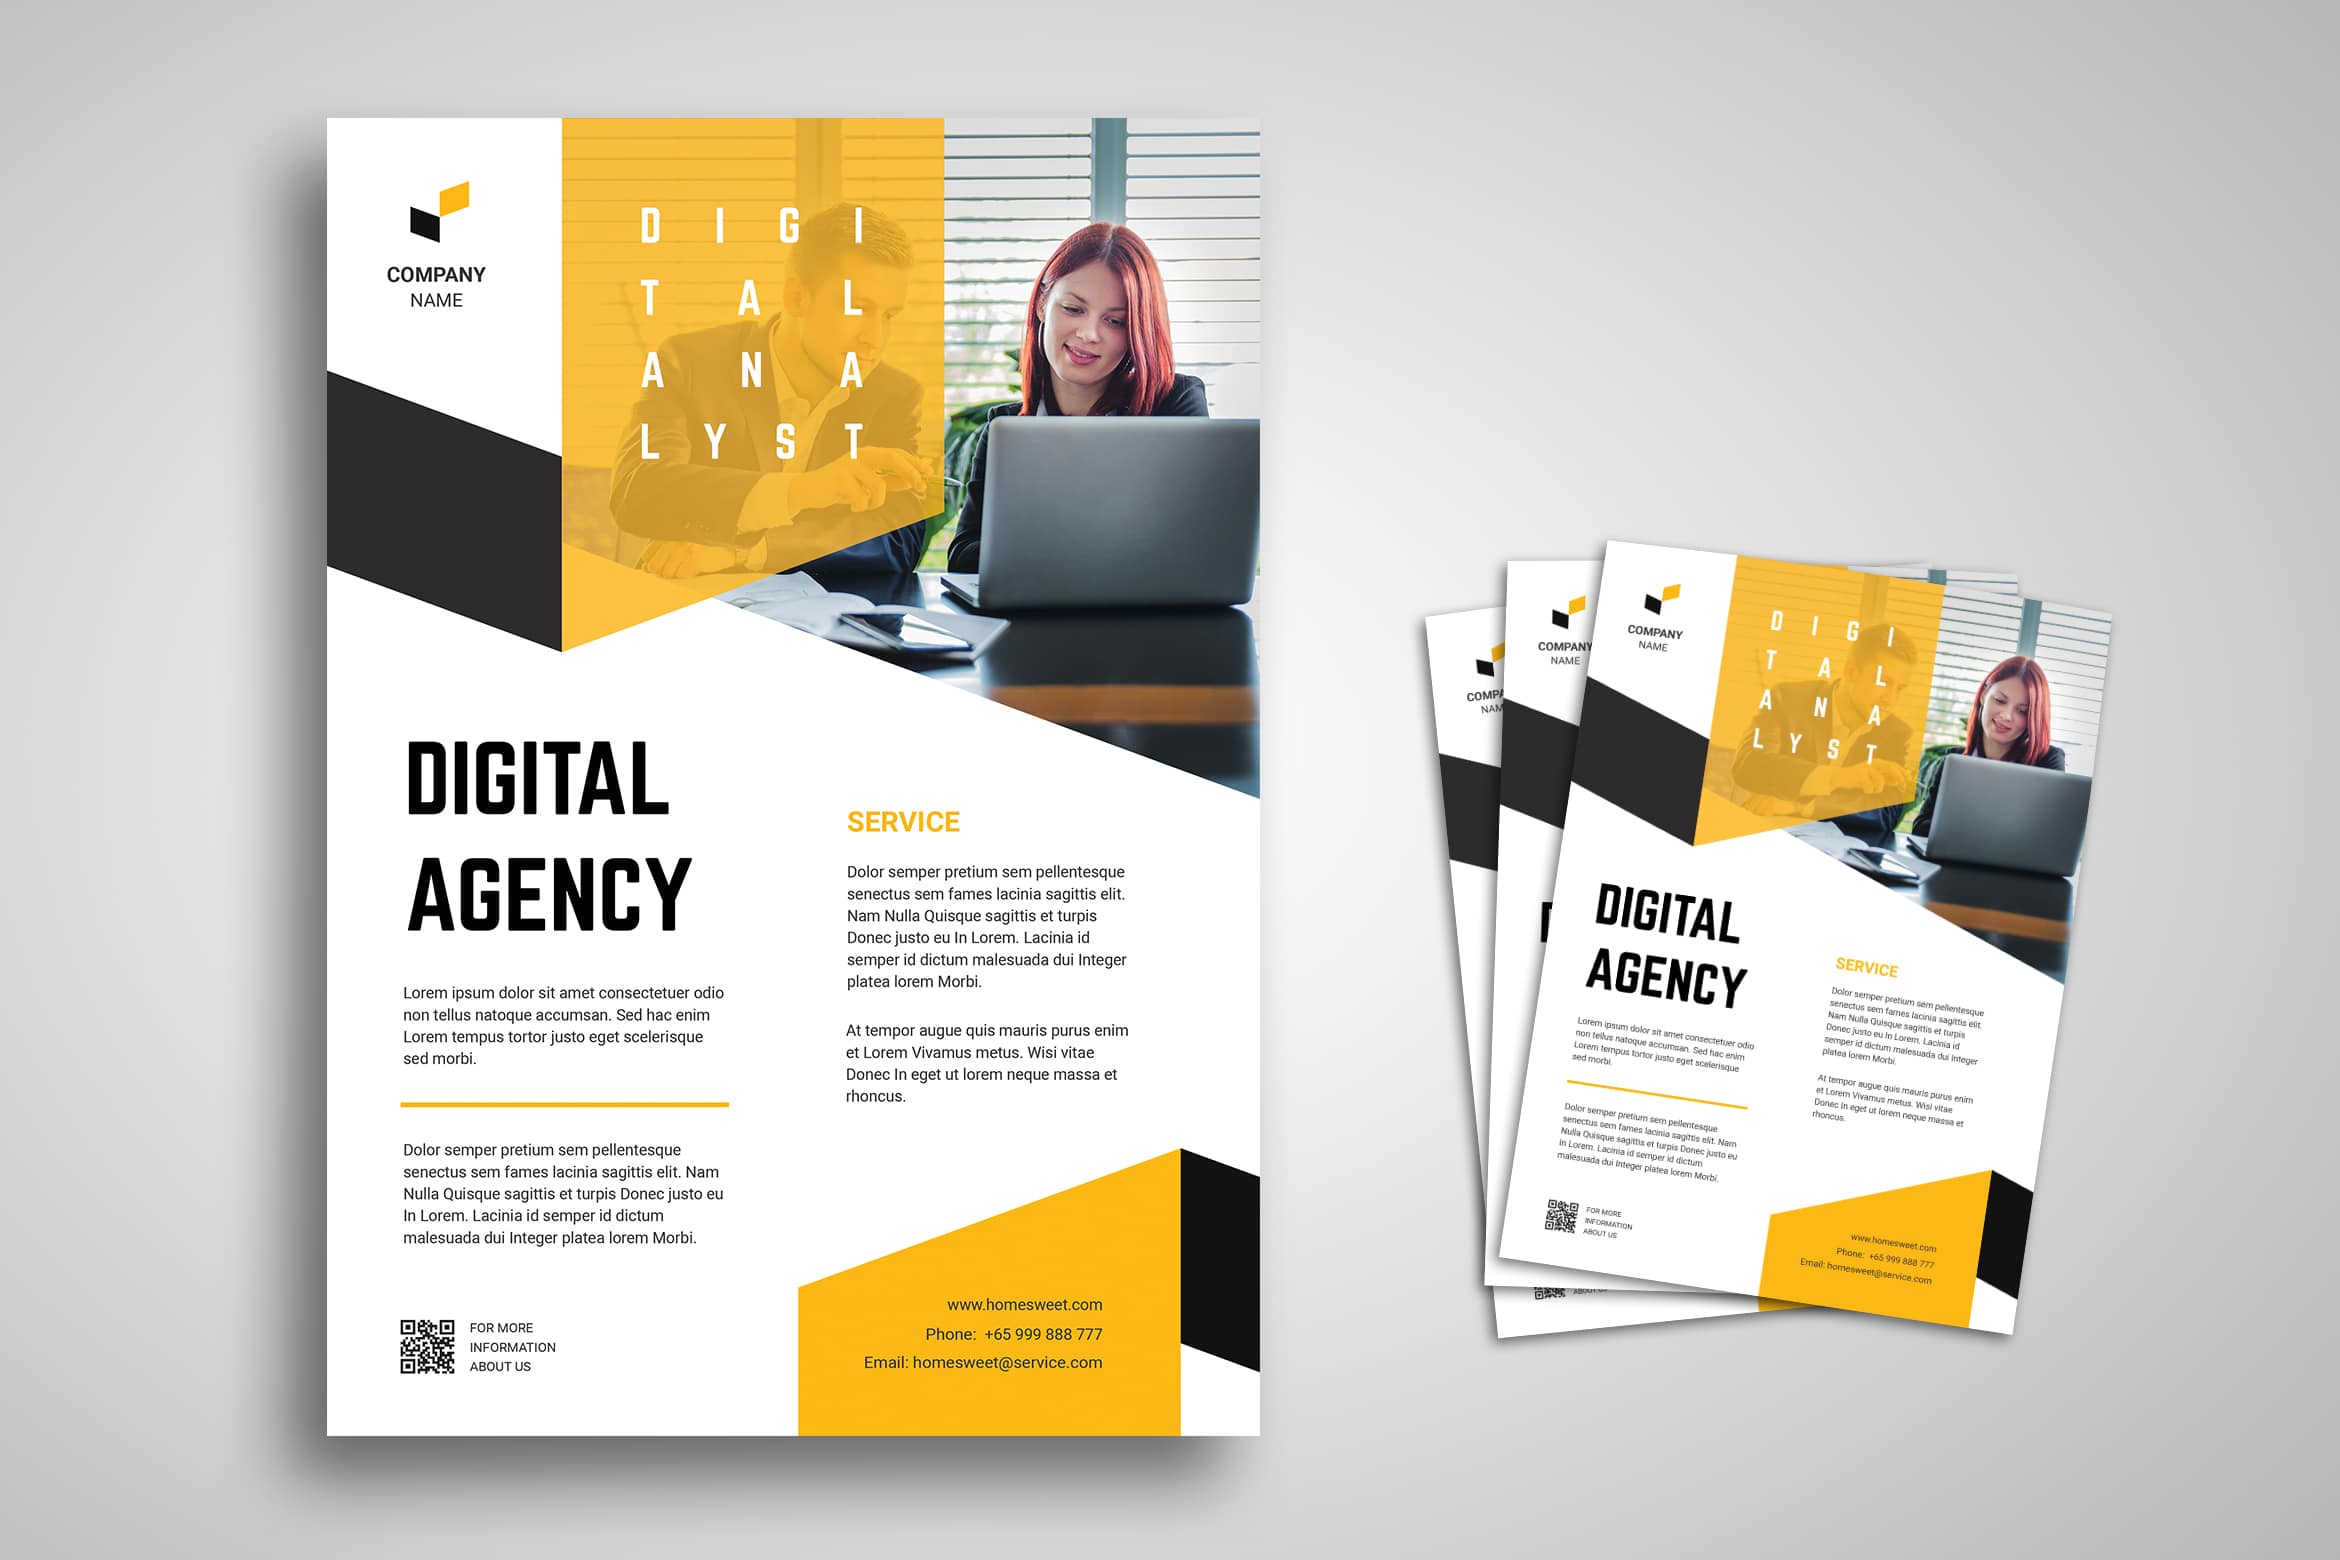 Flyer Template - Digital Analyst Company